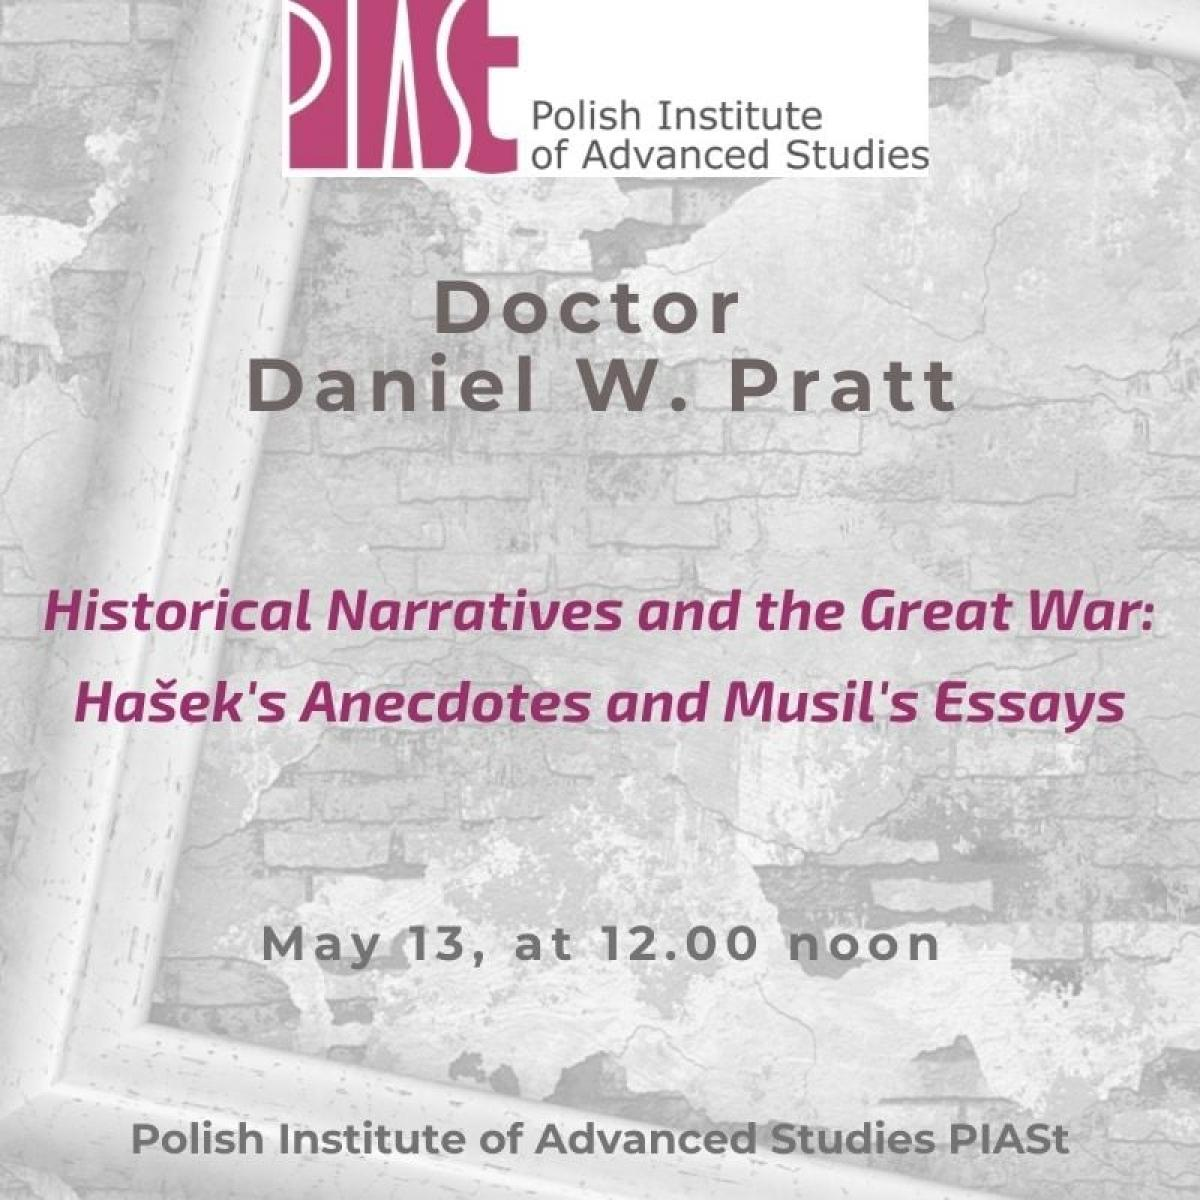 Historical Narratives and the Great War: Hašek's Anecdotes and Musil's Essays